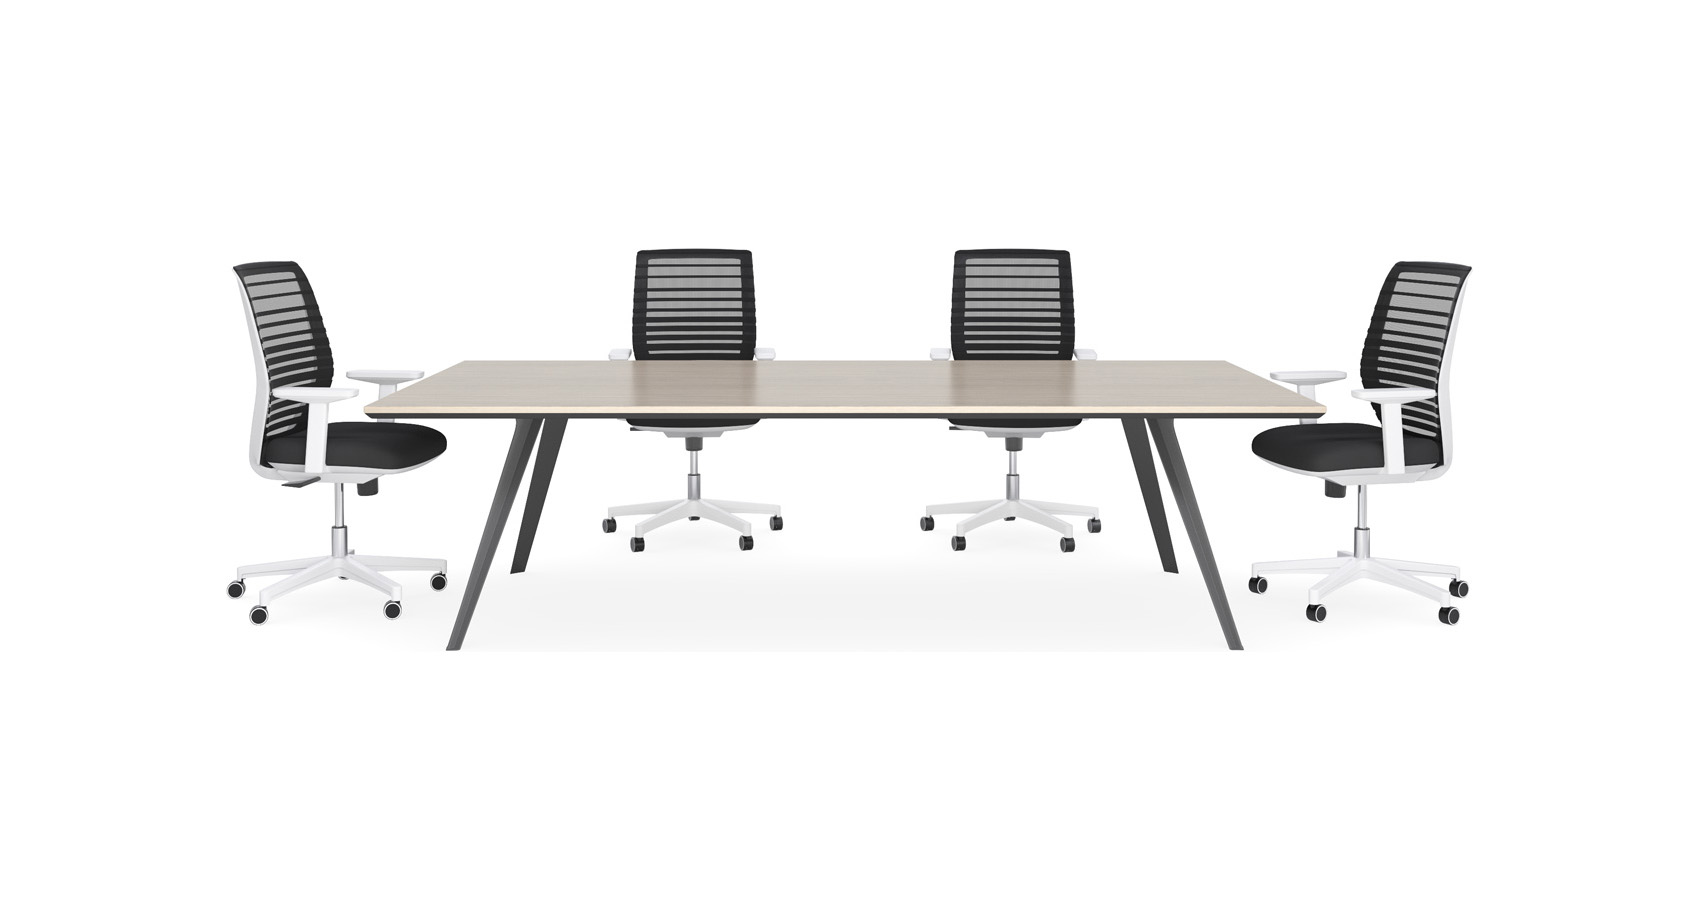 Dart. Dart_Leg_Detail; Dart_Boardroom Table_Space_DFV;  Dart_Round_Conference_Table_White_MiroS; Dart_Round_Conference_Table ...